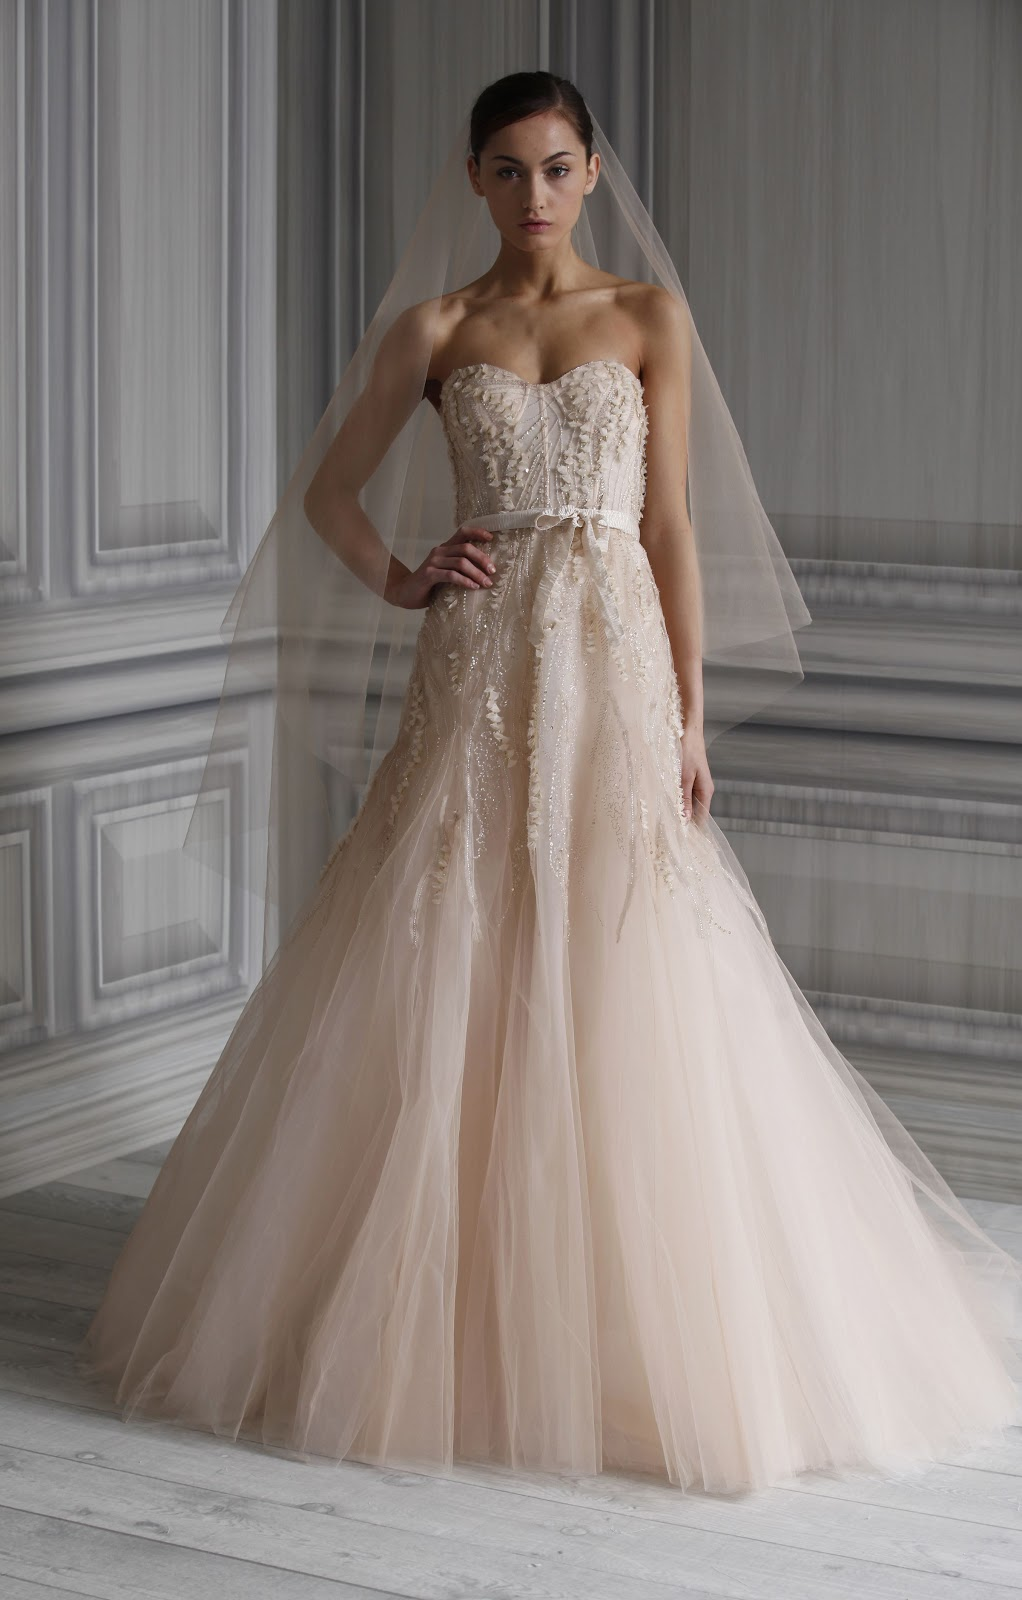 Monique Lhuillier Spring 2012 Bridal Collection - Popular ...